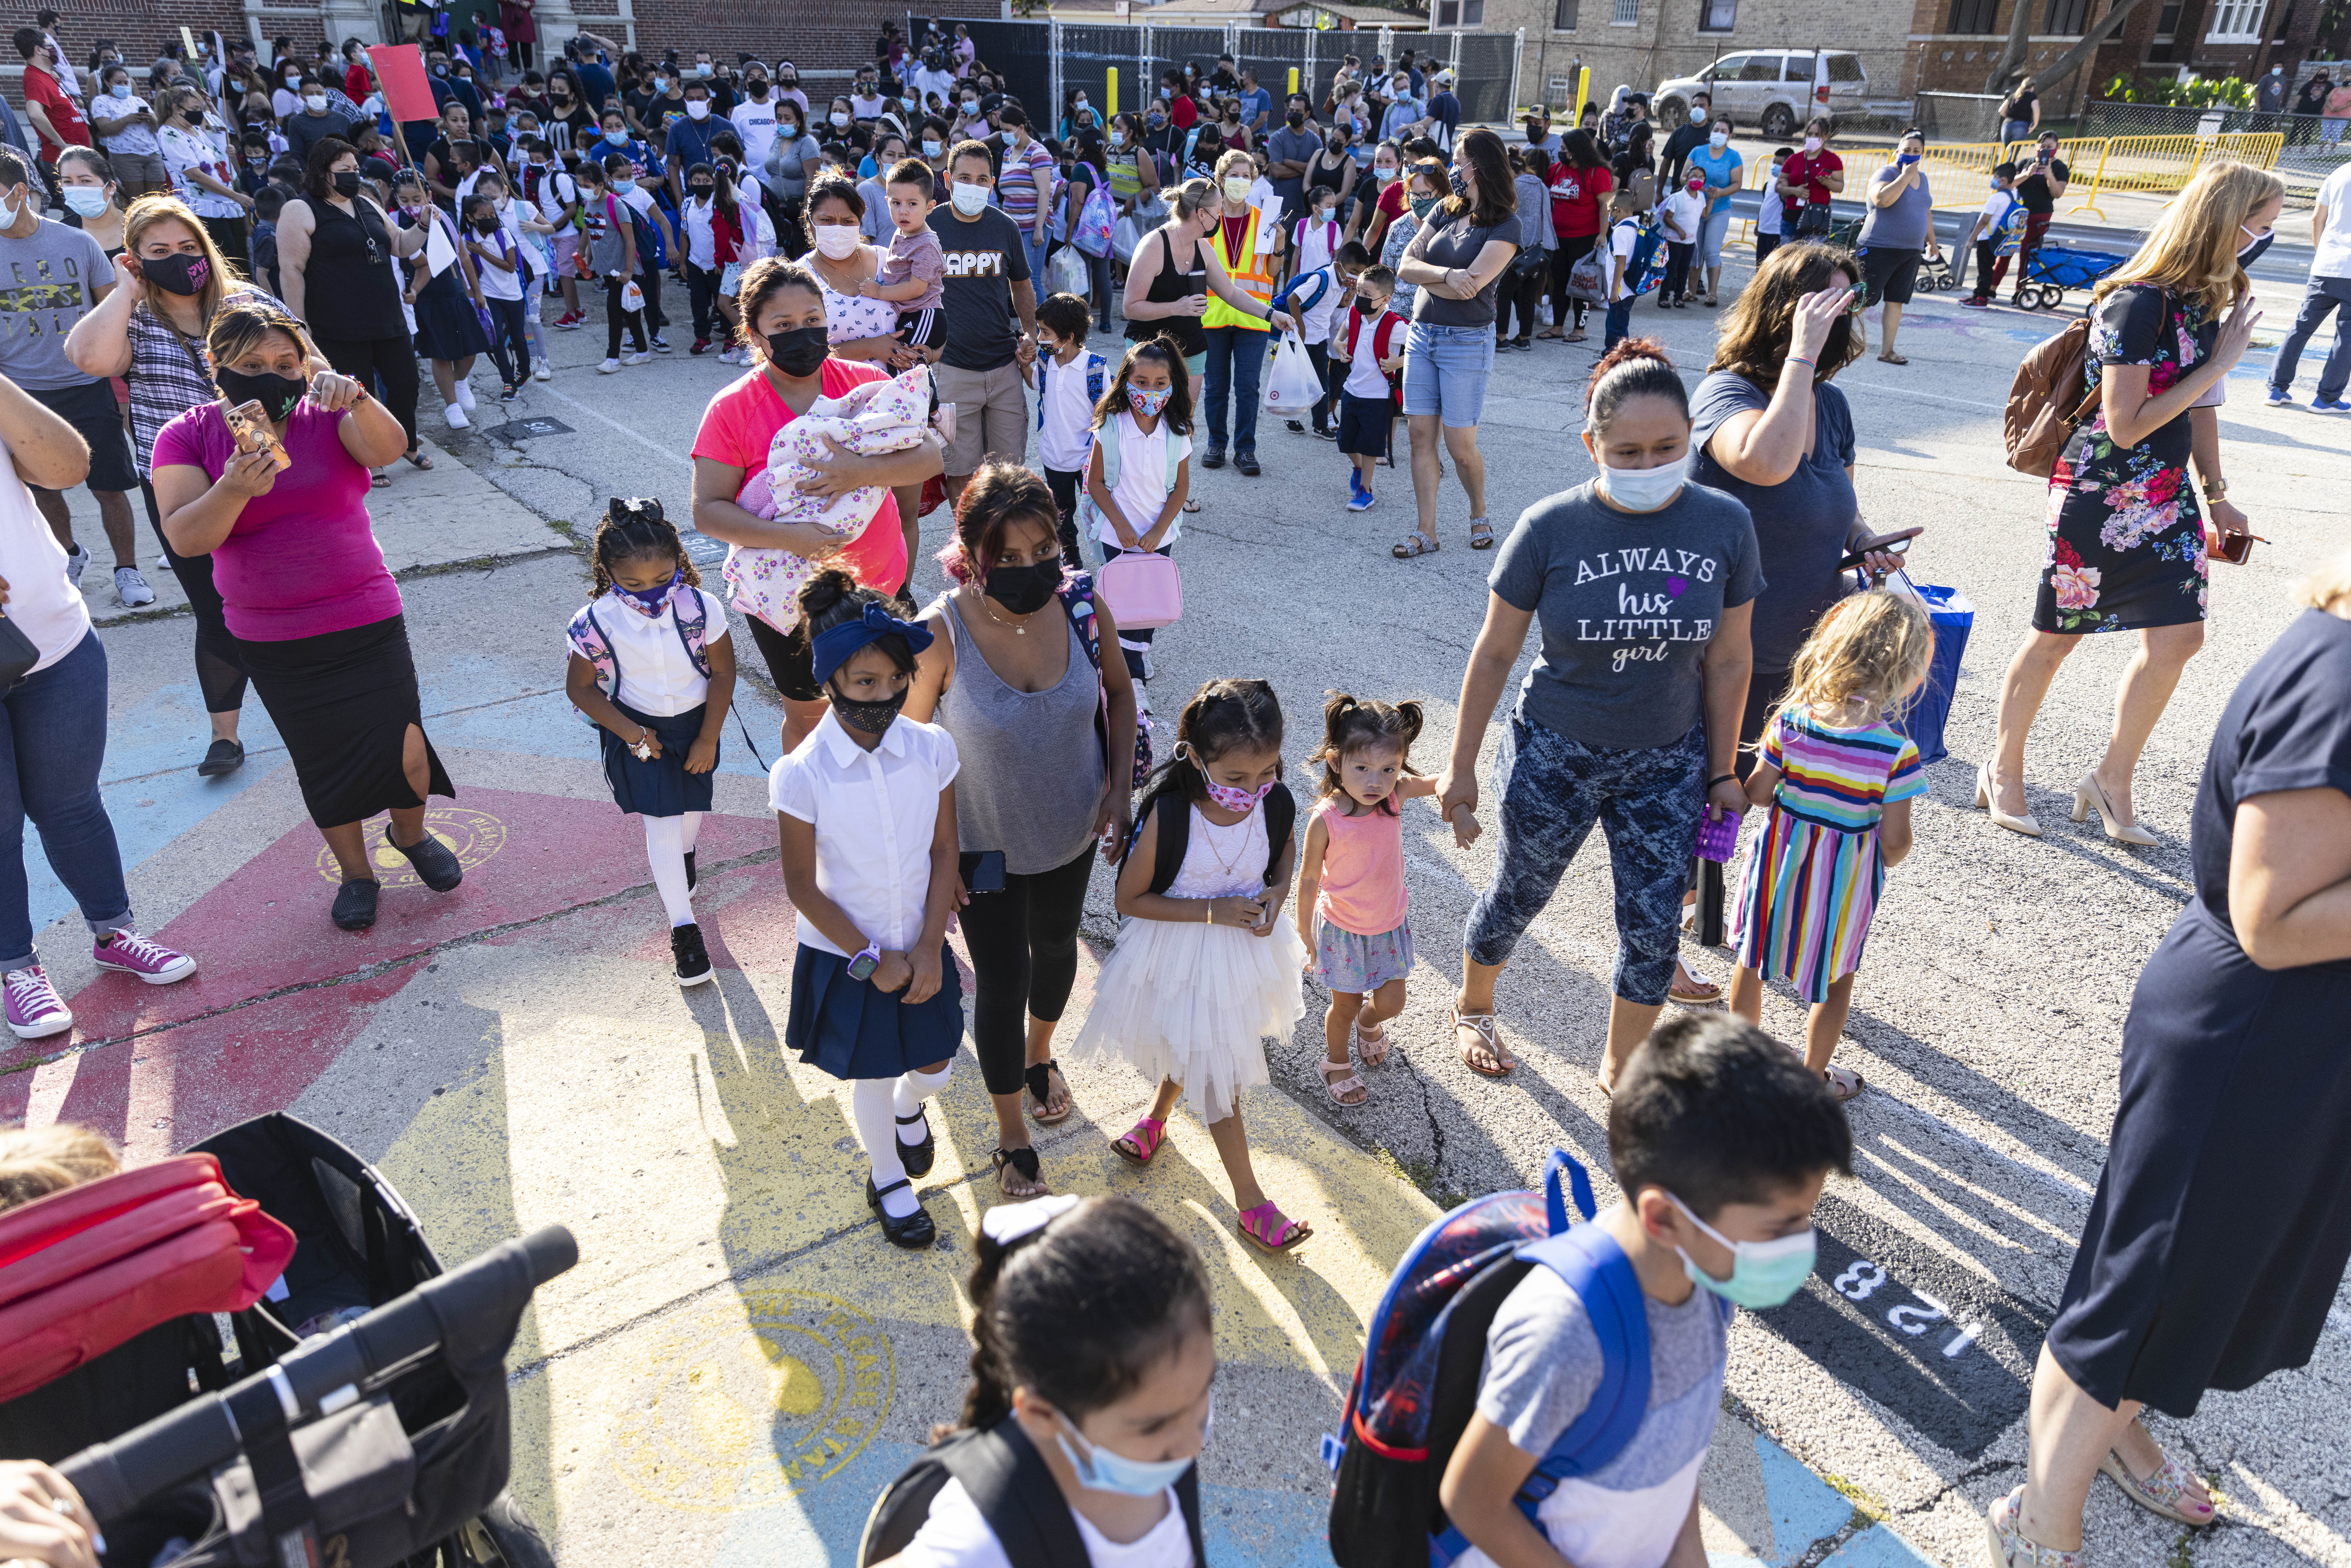 Students and parents wait in line as students return to school on the first day of classes at Alessandro Volta Elementary School 4950 N Avers Ave. in Albany Park, Monday, Aug. 30, 2021.